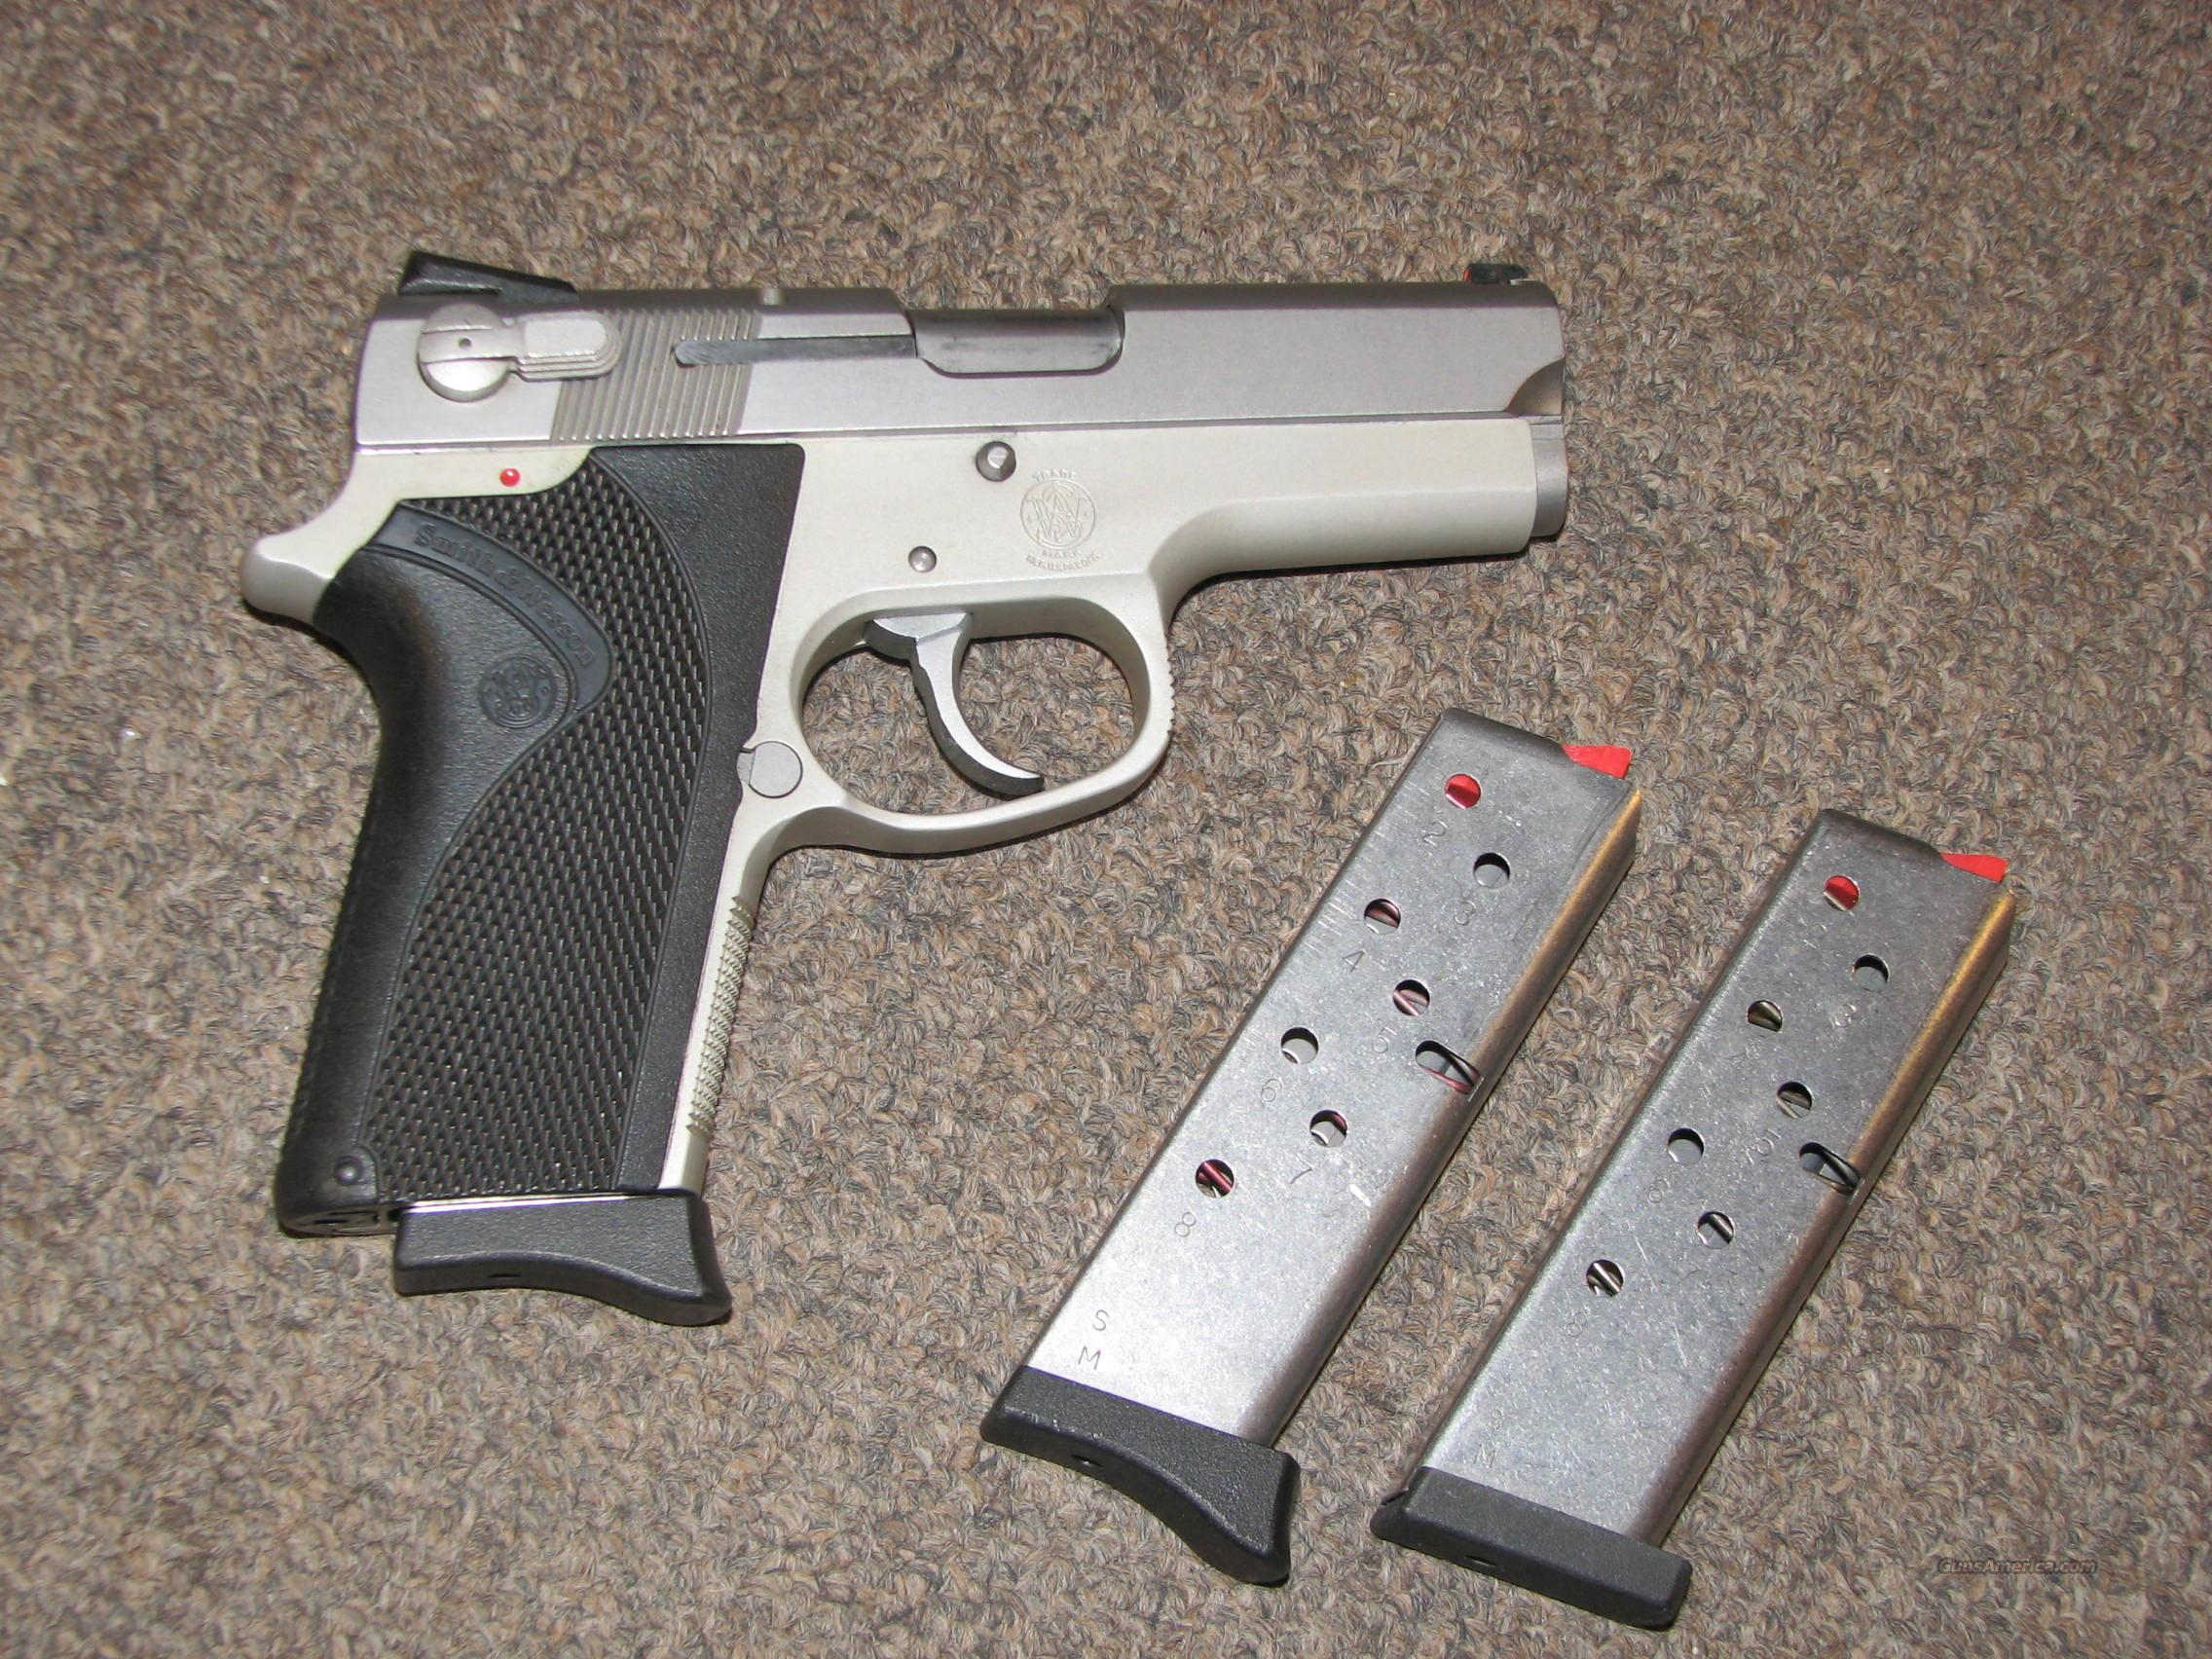 SMITH & WESSON 3913 9mm w/ 3 Mags  Guns > Pistols > Smith & Wesson Pistols - Autos > Alloy Frame